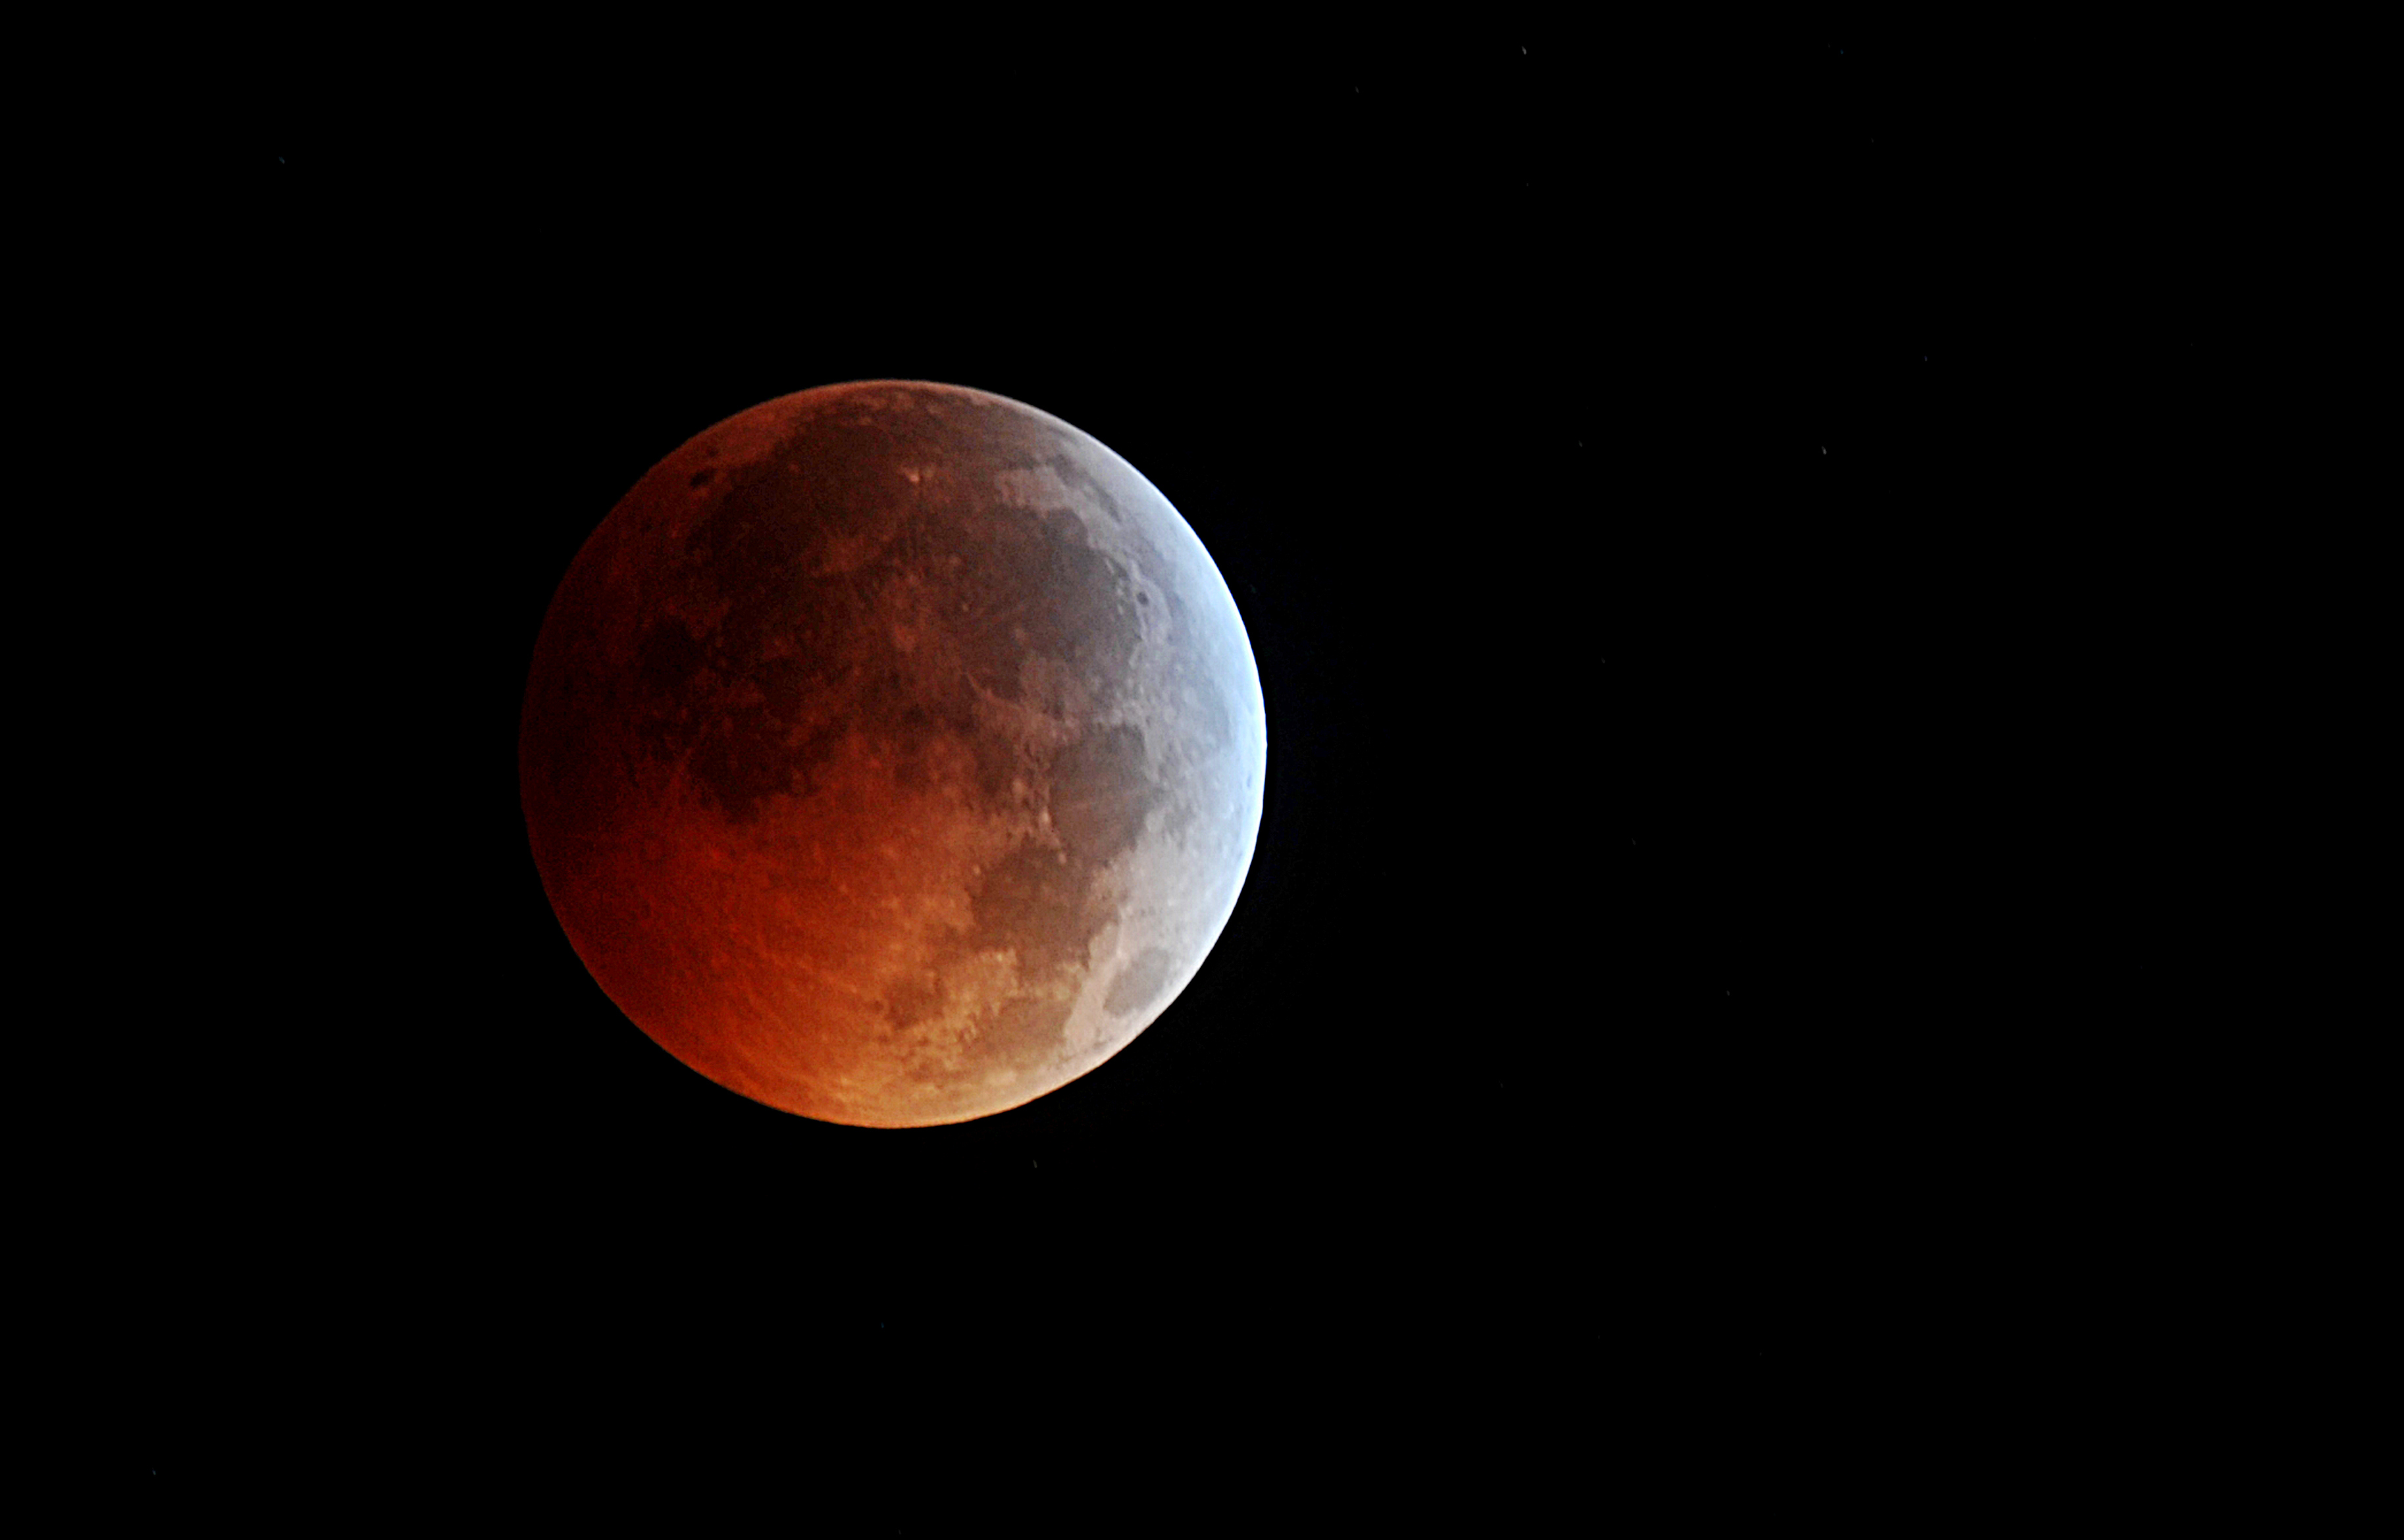 Lights out: a blood moon as a total lunar eclipse reaches its peak